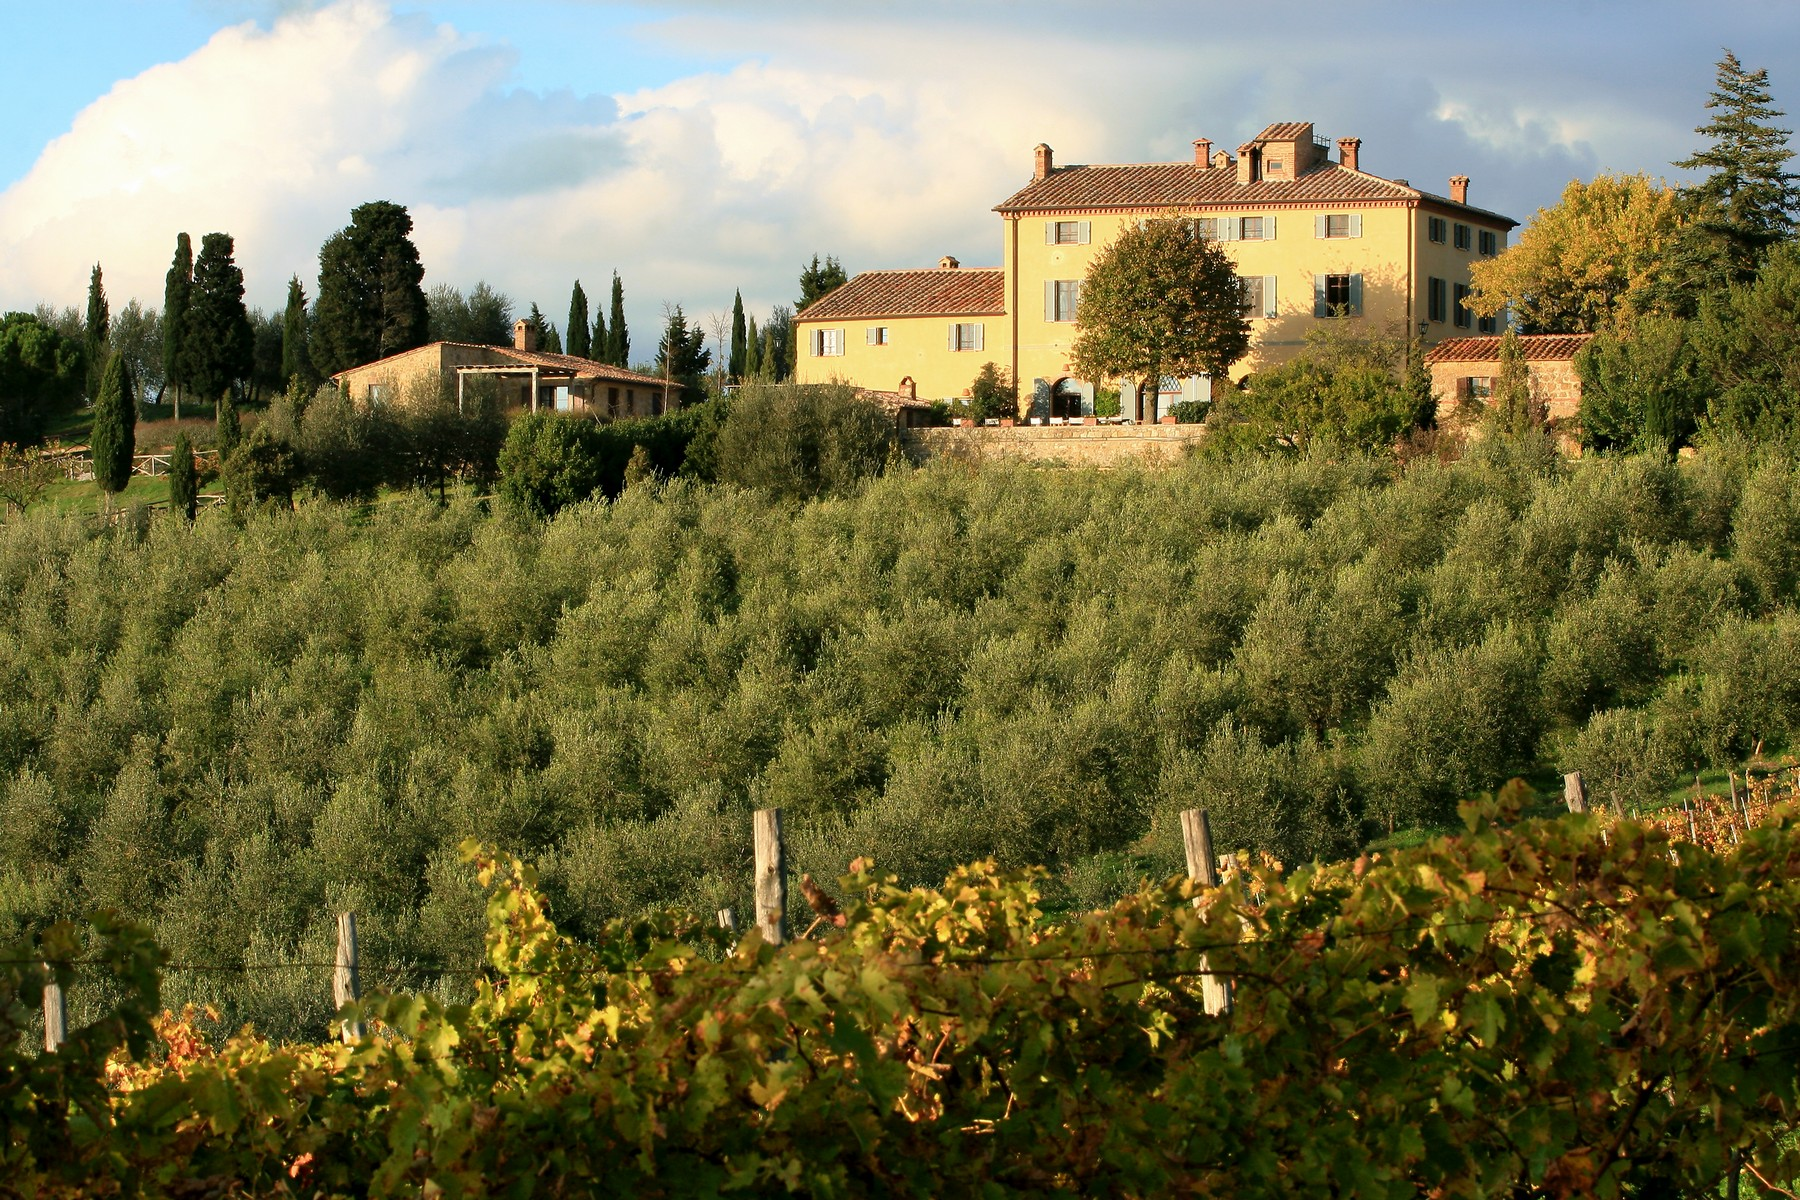 단독 가정 주택 용 매매 에 Spectacular estate with vineyard near Pienza Montichiello Pienza, Siena 53026 이탈리아